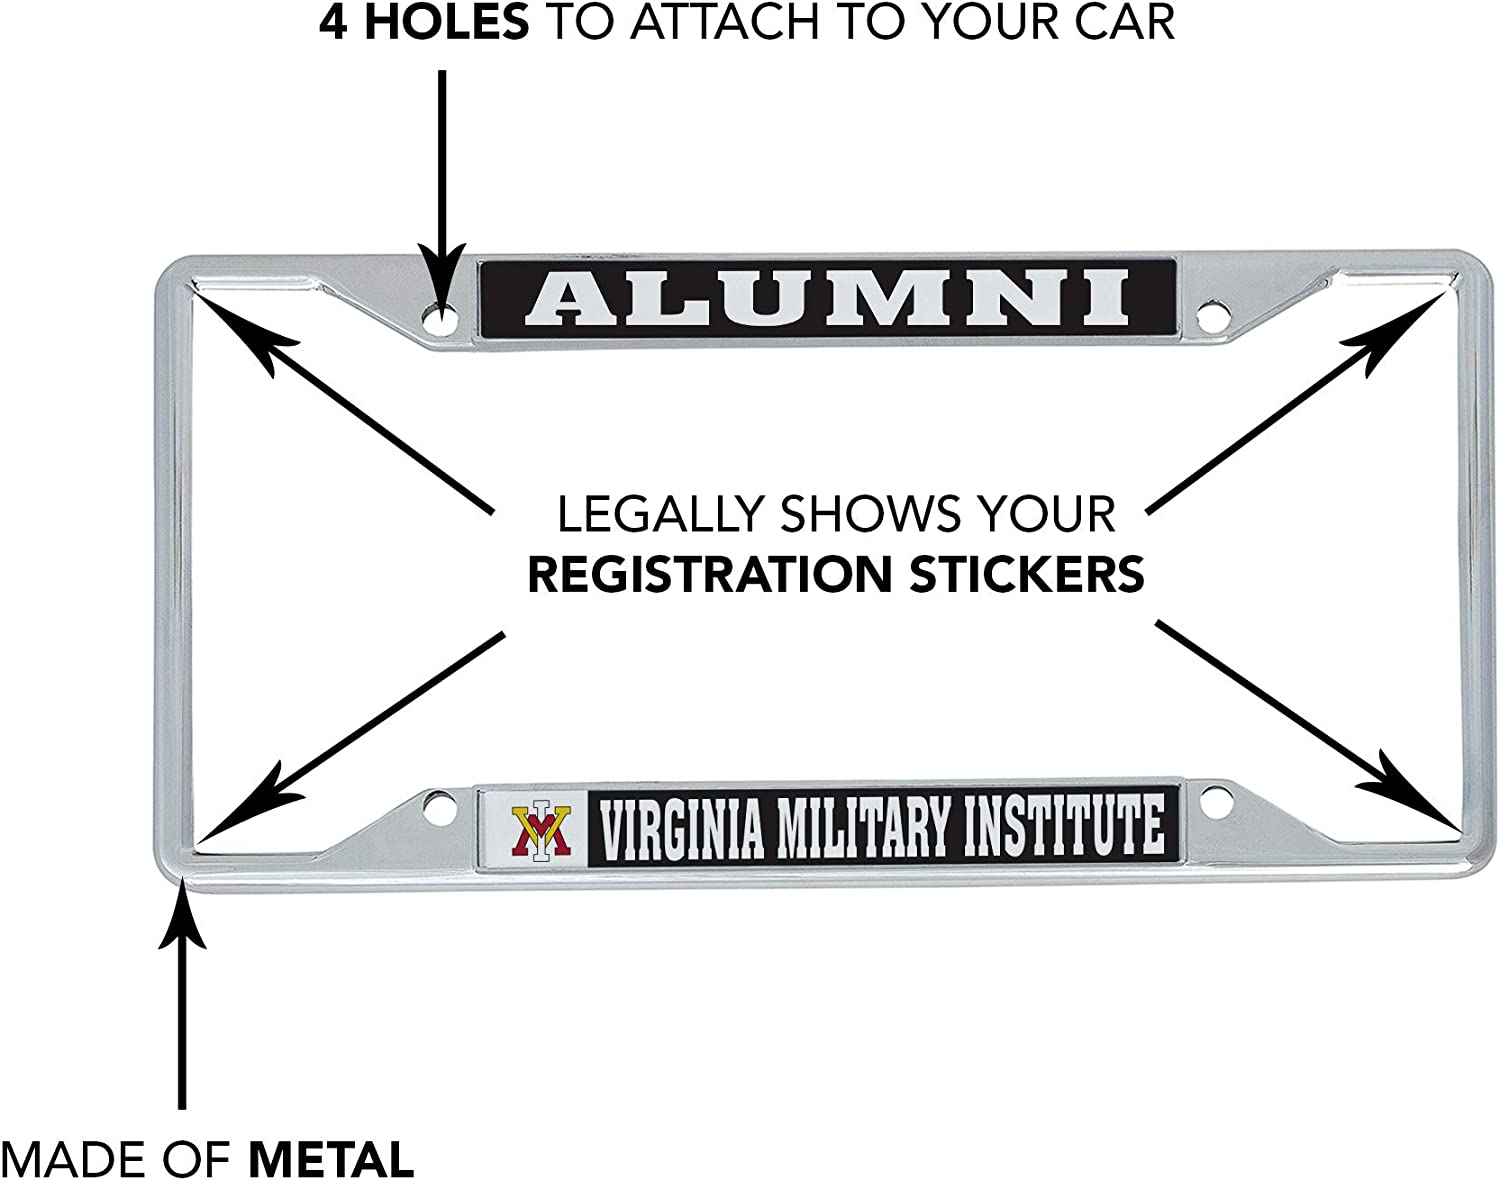 Alumni Desert Cactus Virginia Military Institute VMI Keydets NCAA Metal License Plate Frame for Front Back of Car Officially Licensed